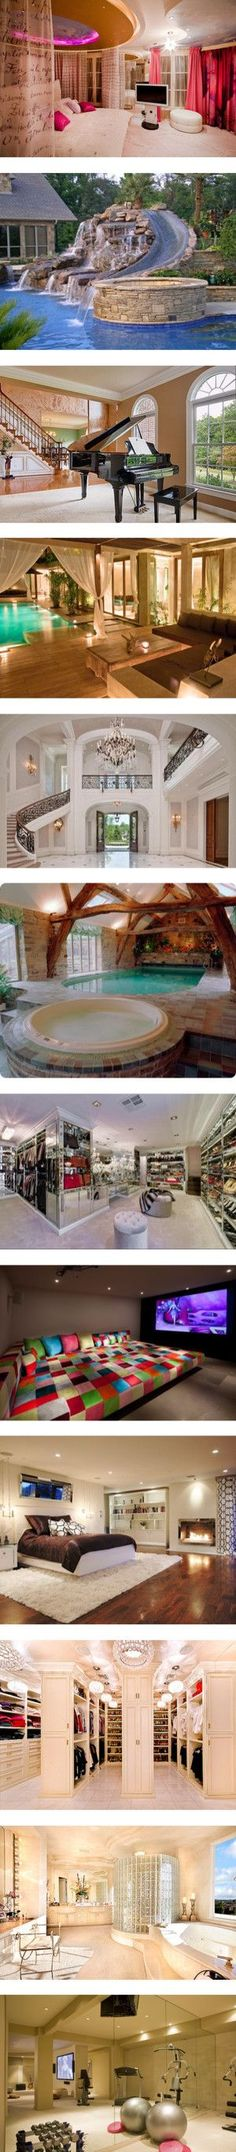 156 best Luxurious Homes images on Pinterest